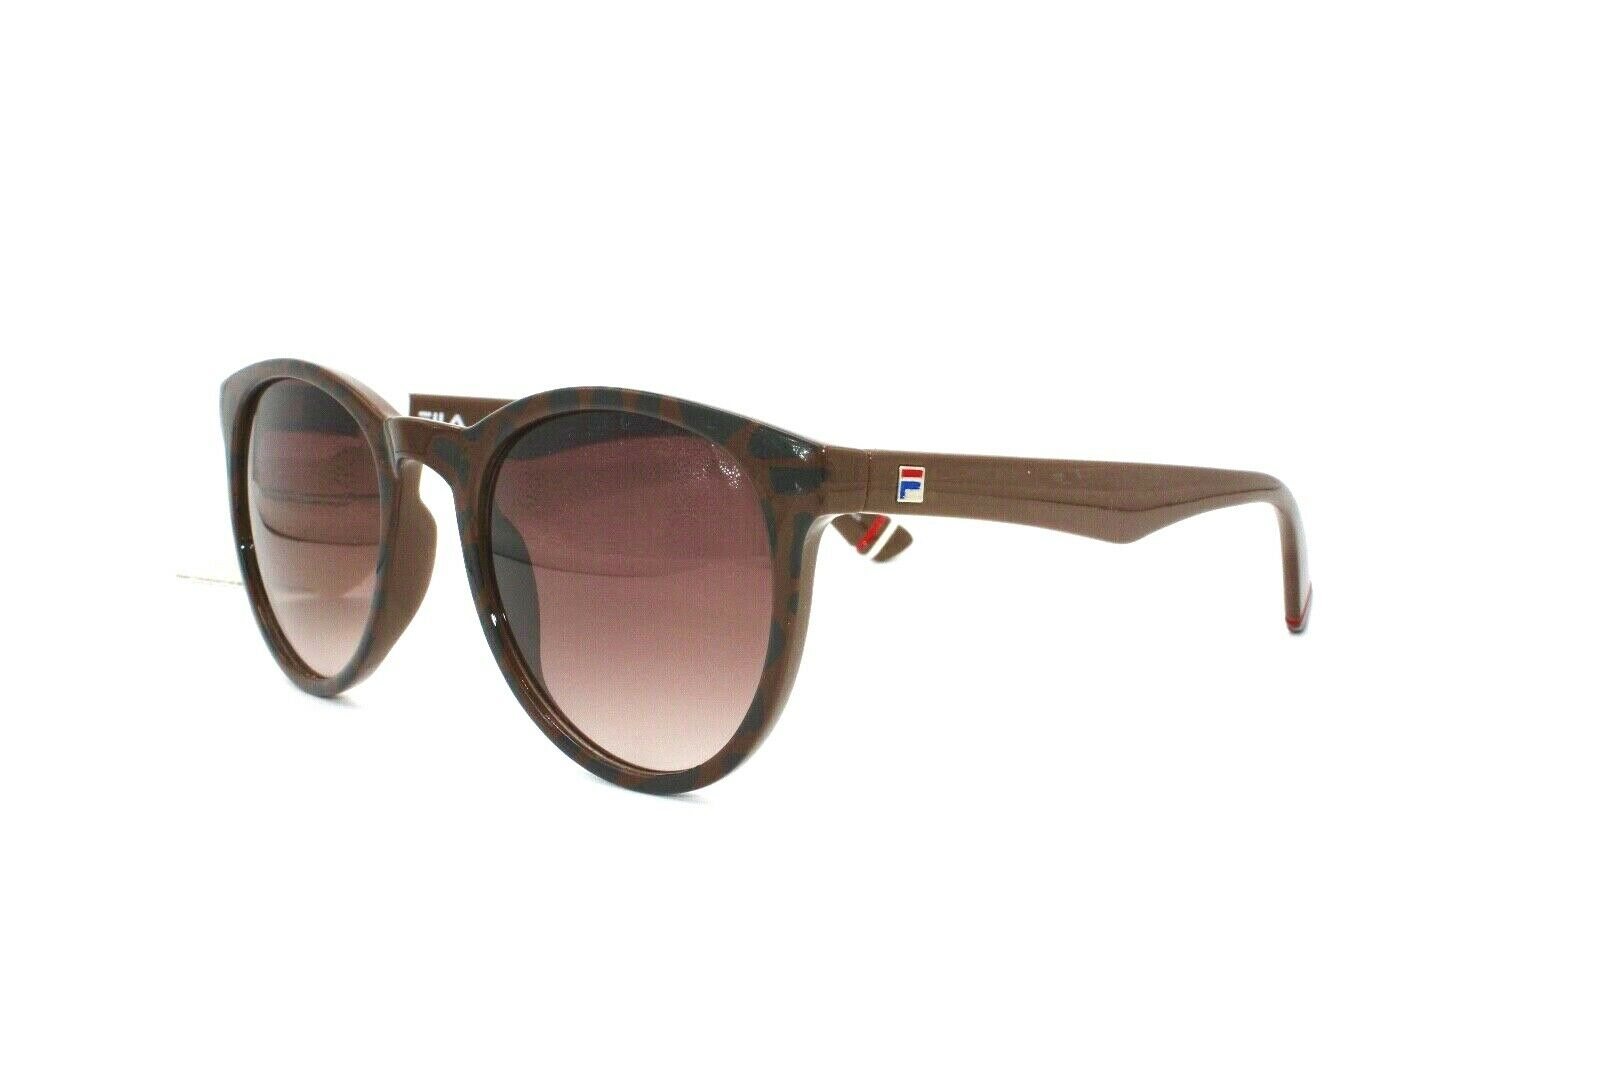 FILA Sunglasses SF9289 03AZ 53-22-140 CAT3 - Mydesigneroptic